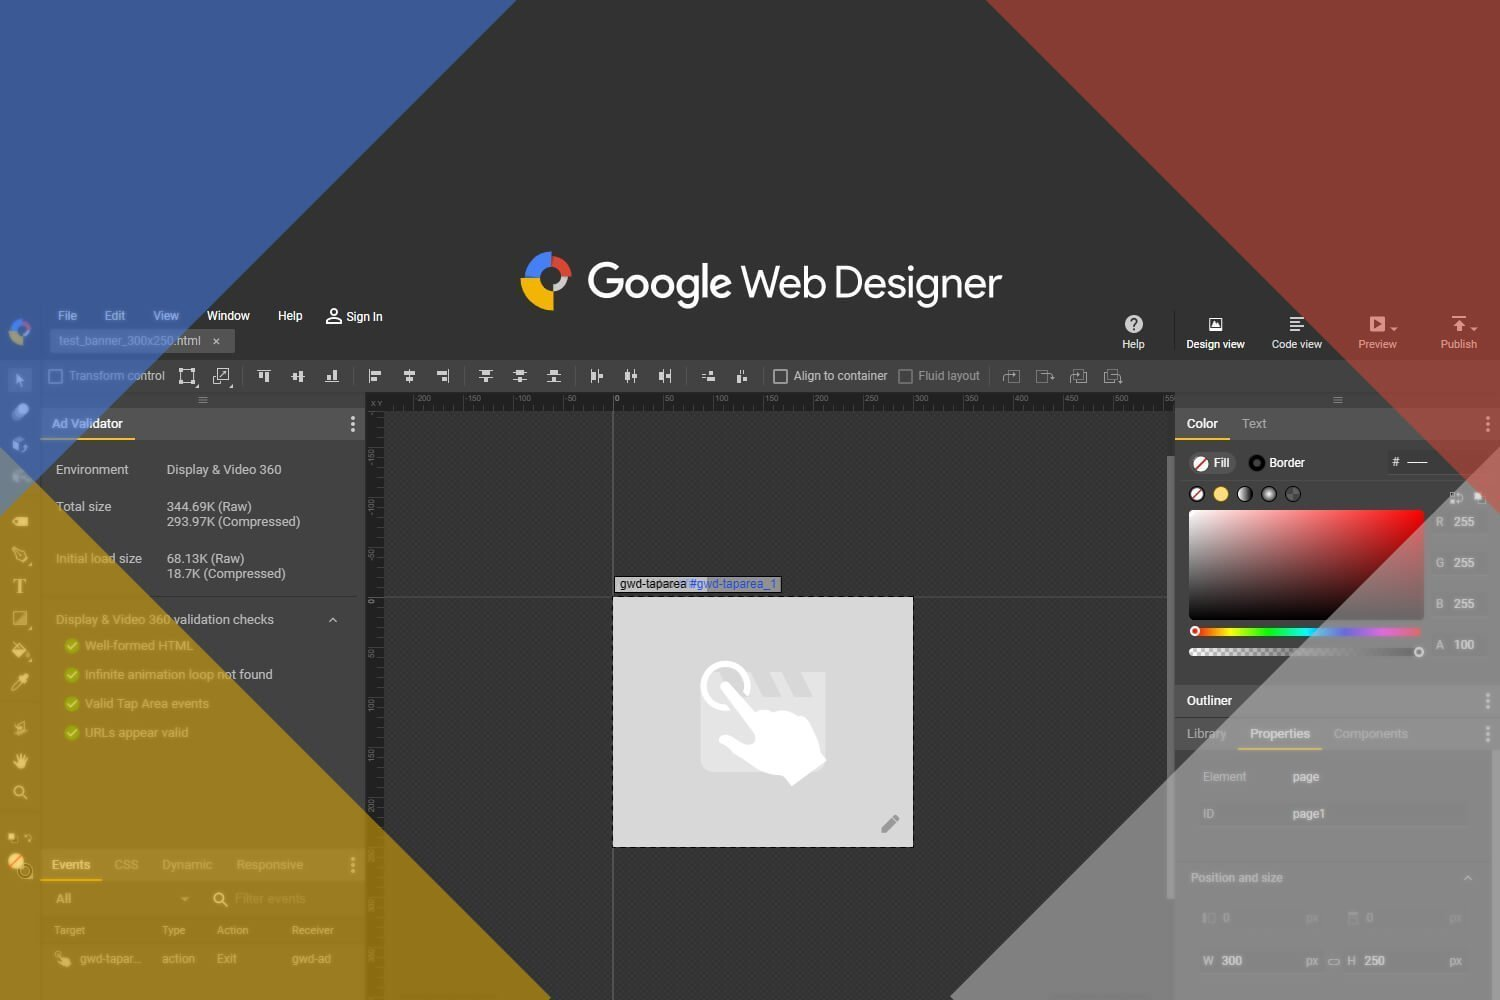 Learn how to build Rich Media Creatives • Google Web Designer